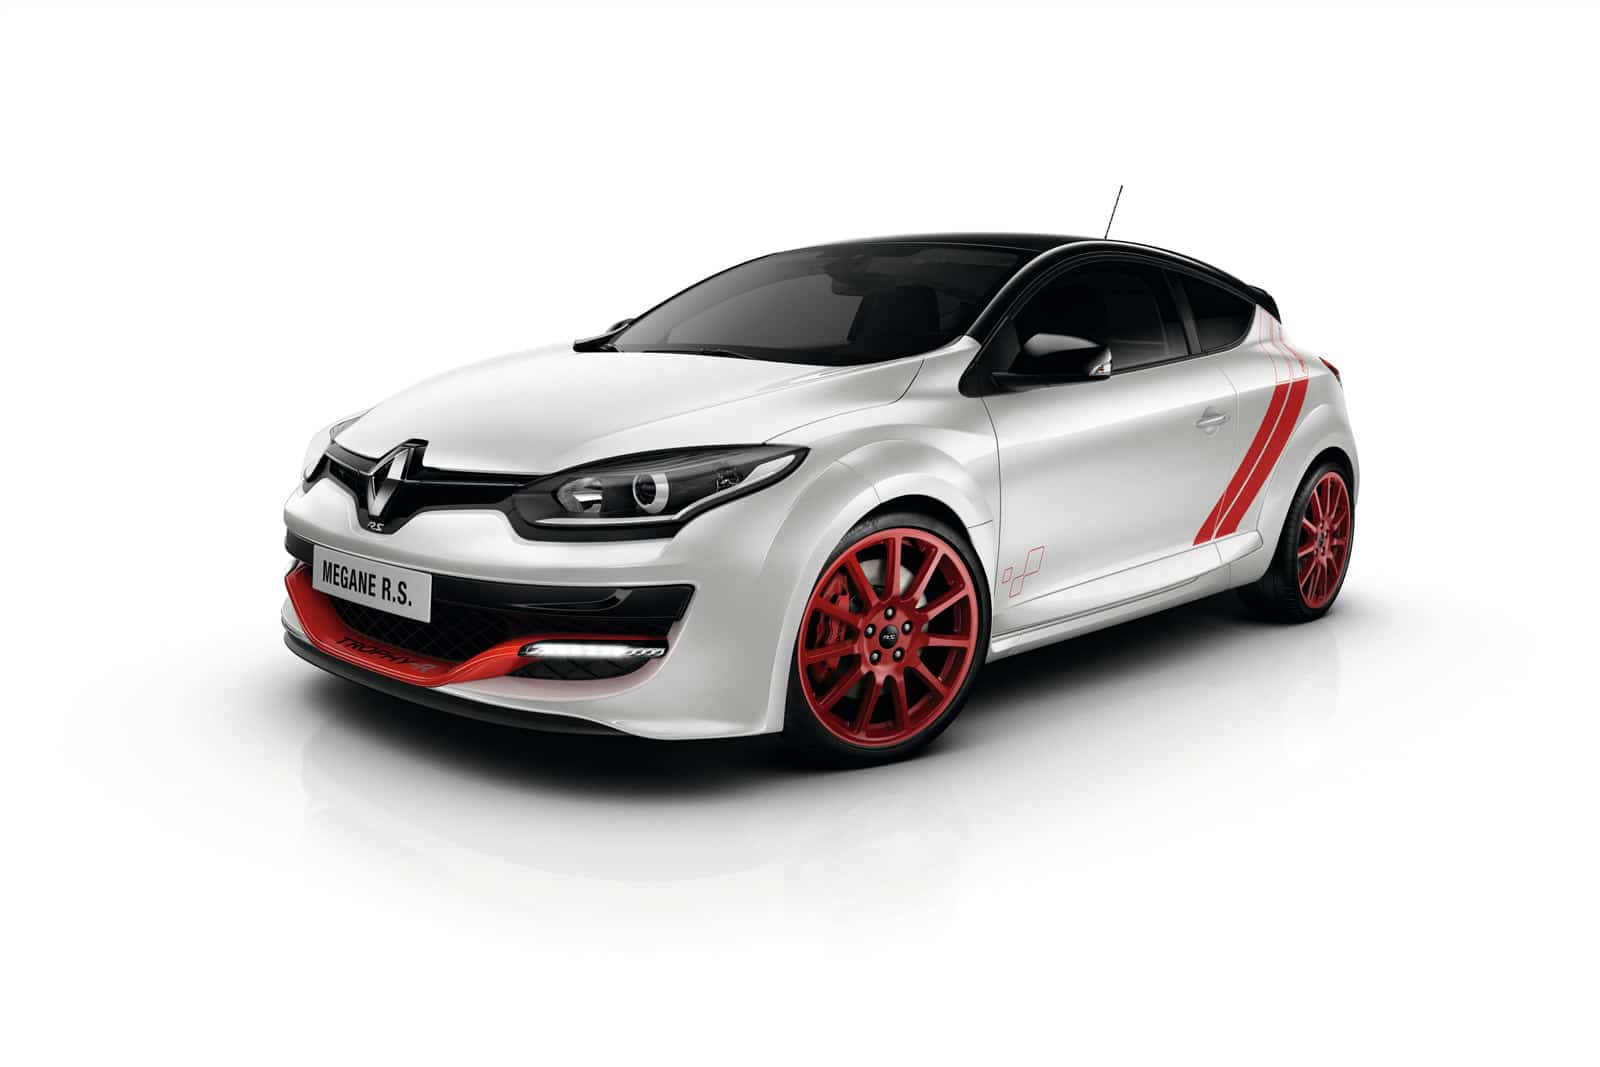 nouvelle renault megane r s 275 trophy r plus de 45 000. Black Bedroom Furniture Sets. Home Design Ideas